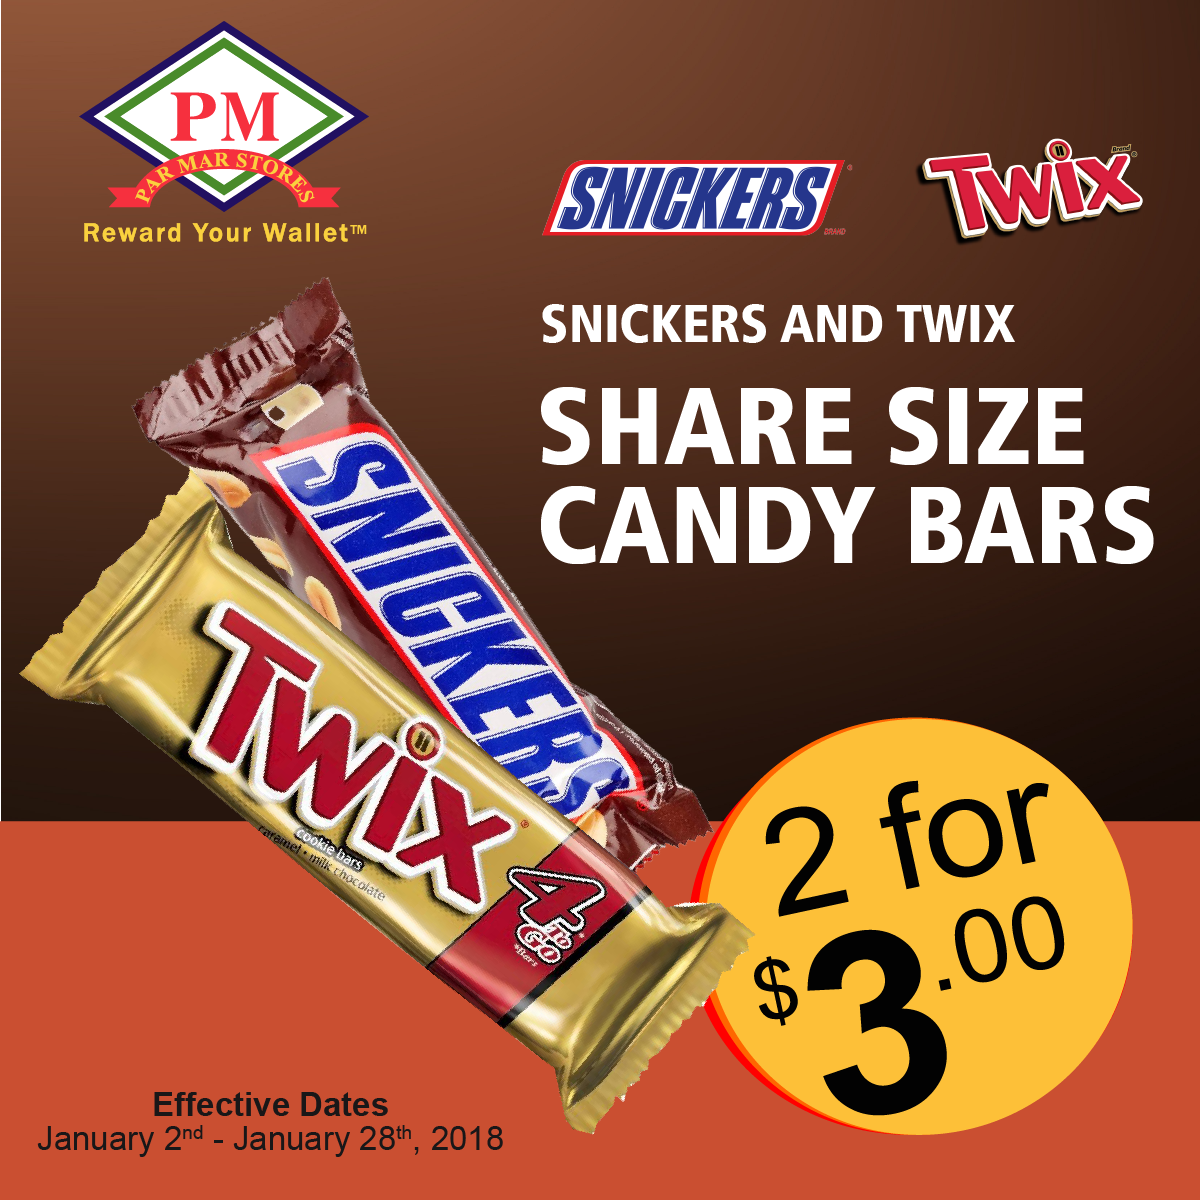 Snickers and Twix Promo